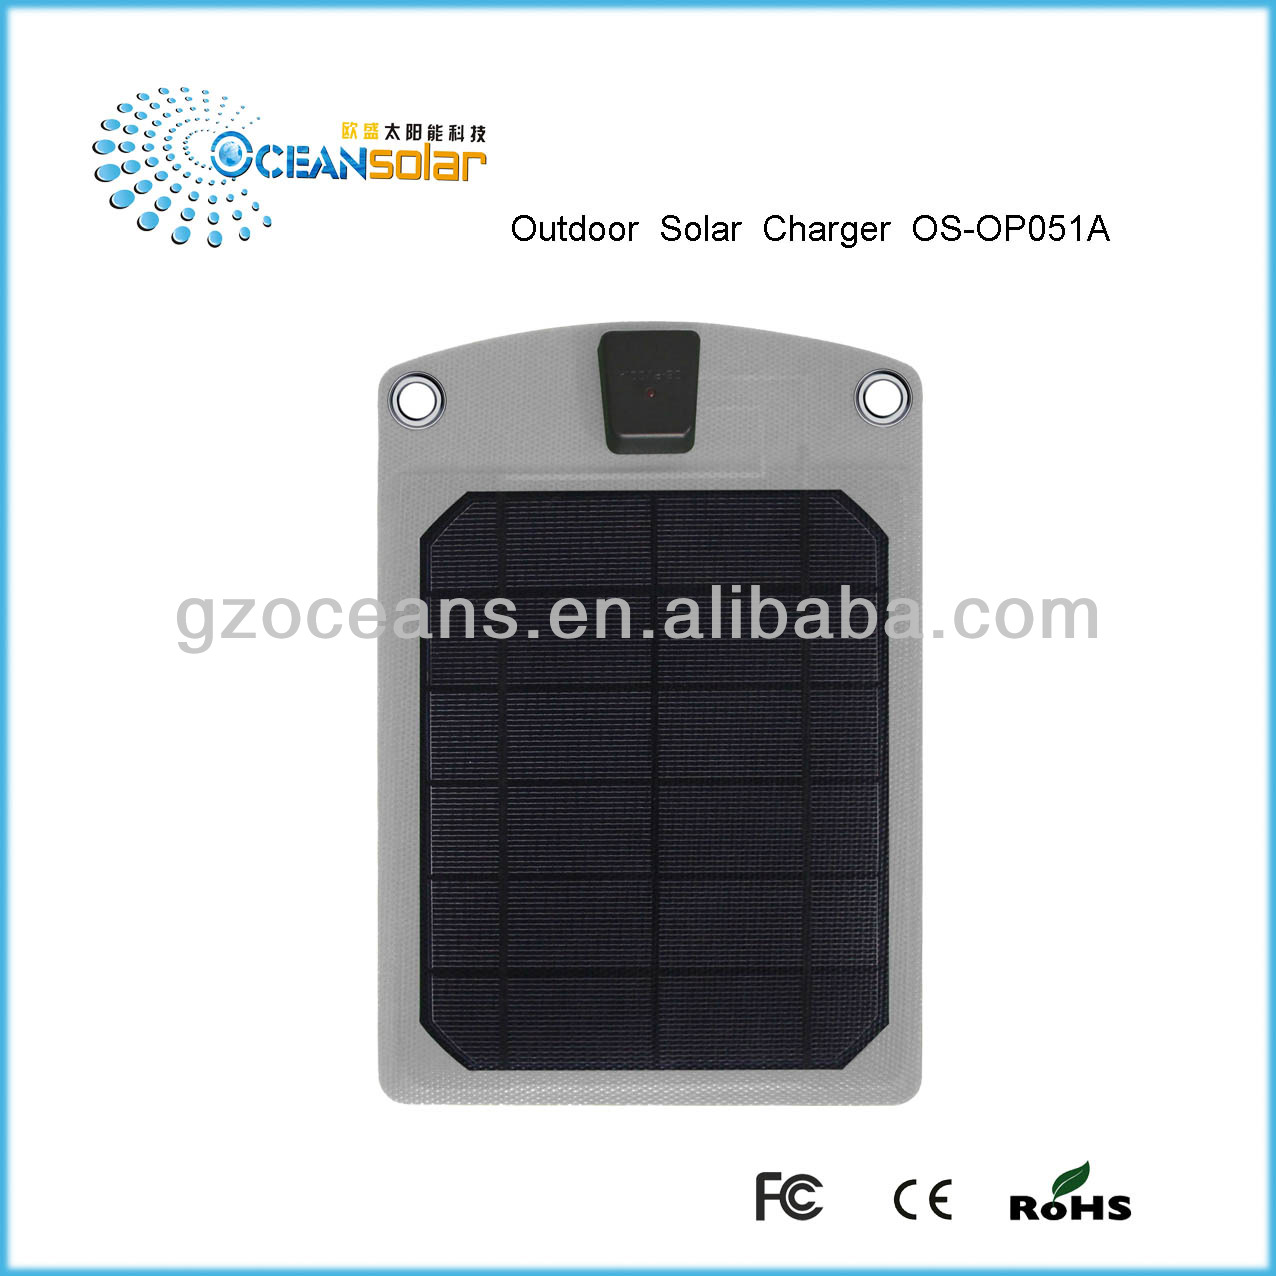 OS-OP051A New solar panel for solar fan energy supply charger solar panel solar panel solar system for home